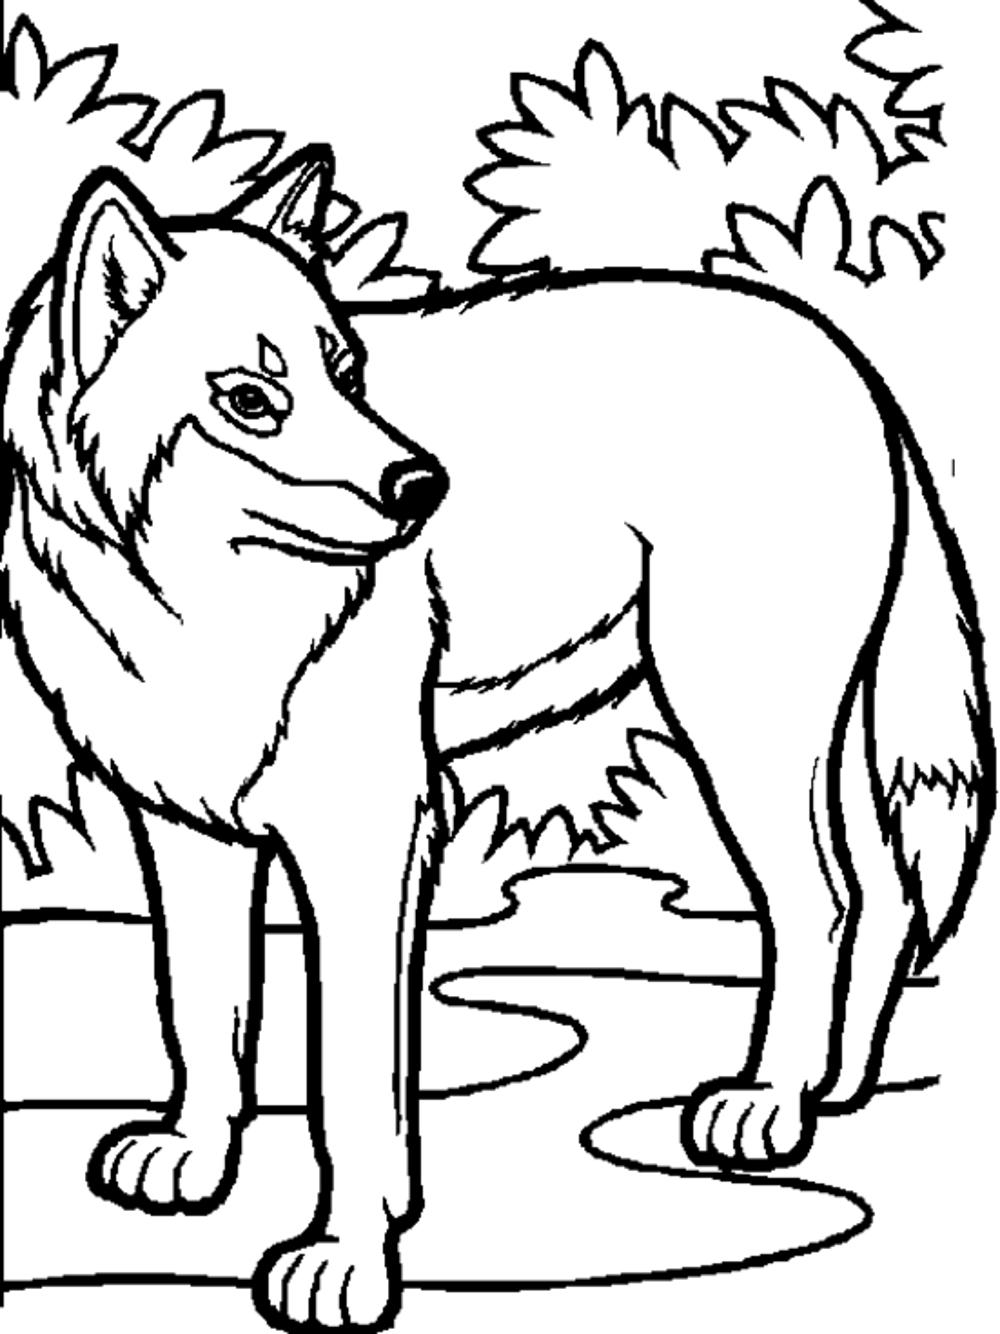 coloring page wolf print download wolf coloring pages theme coloring page wolf